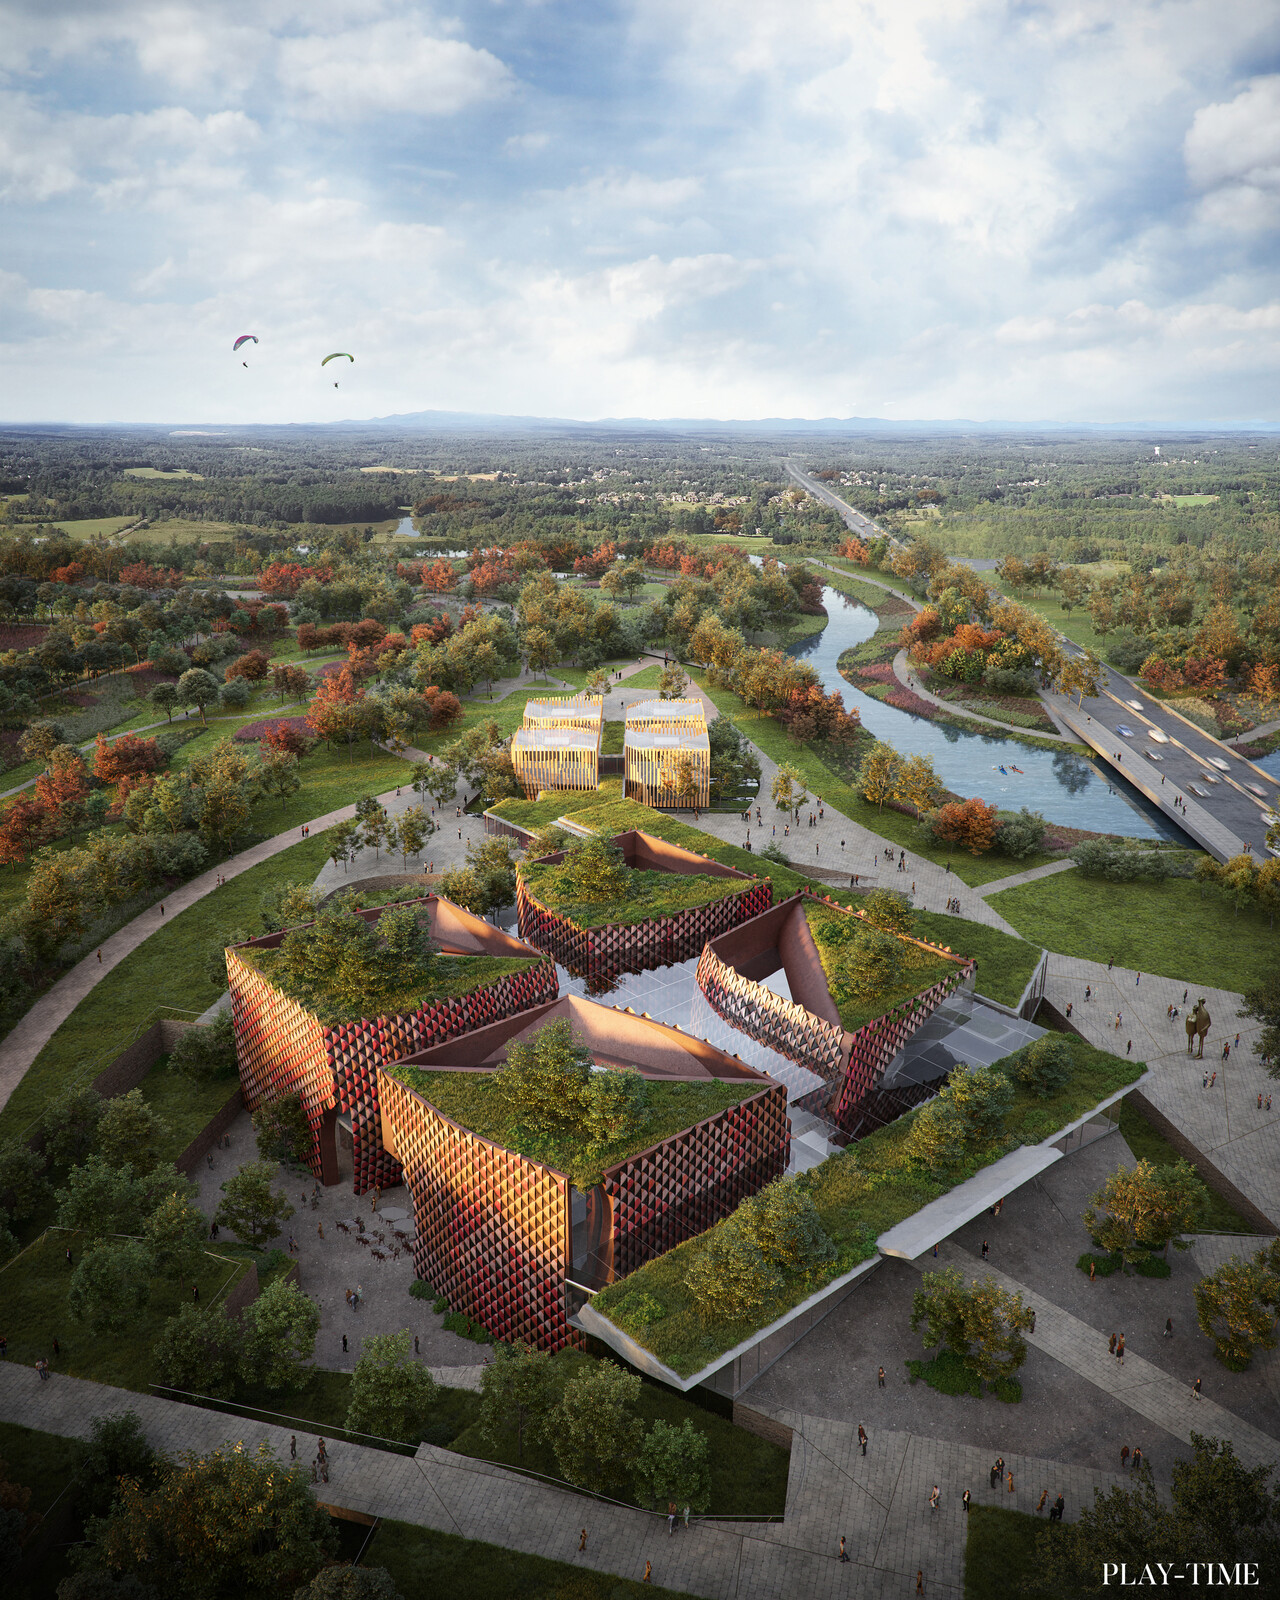 New Luxian Archeology Museum designed by EMBT. Image by PLAY-TIM